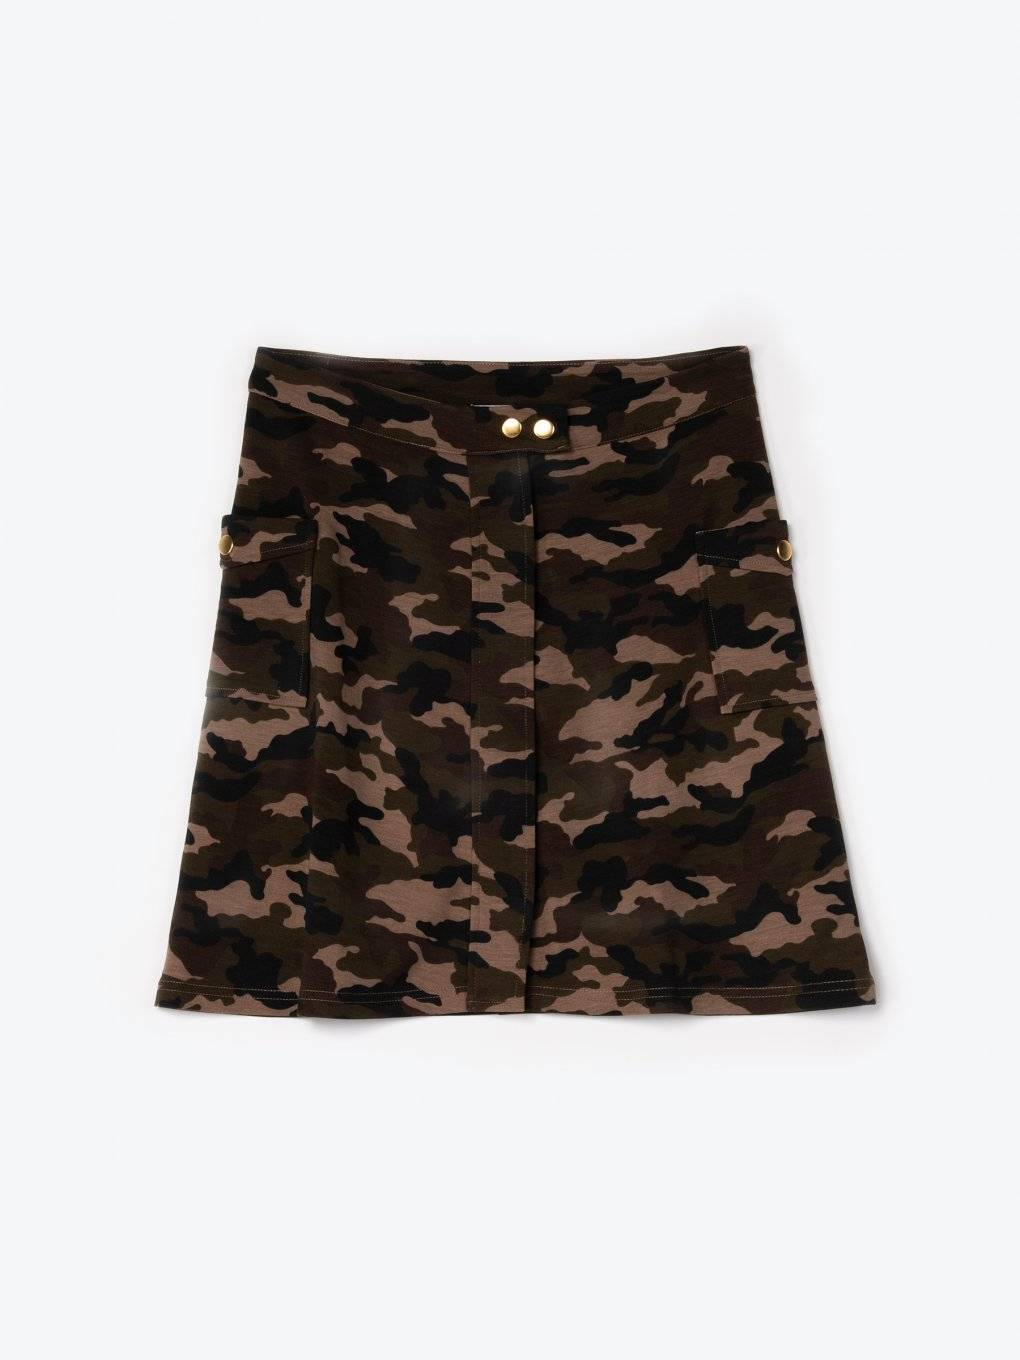 Camo print skirt with side pockets